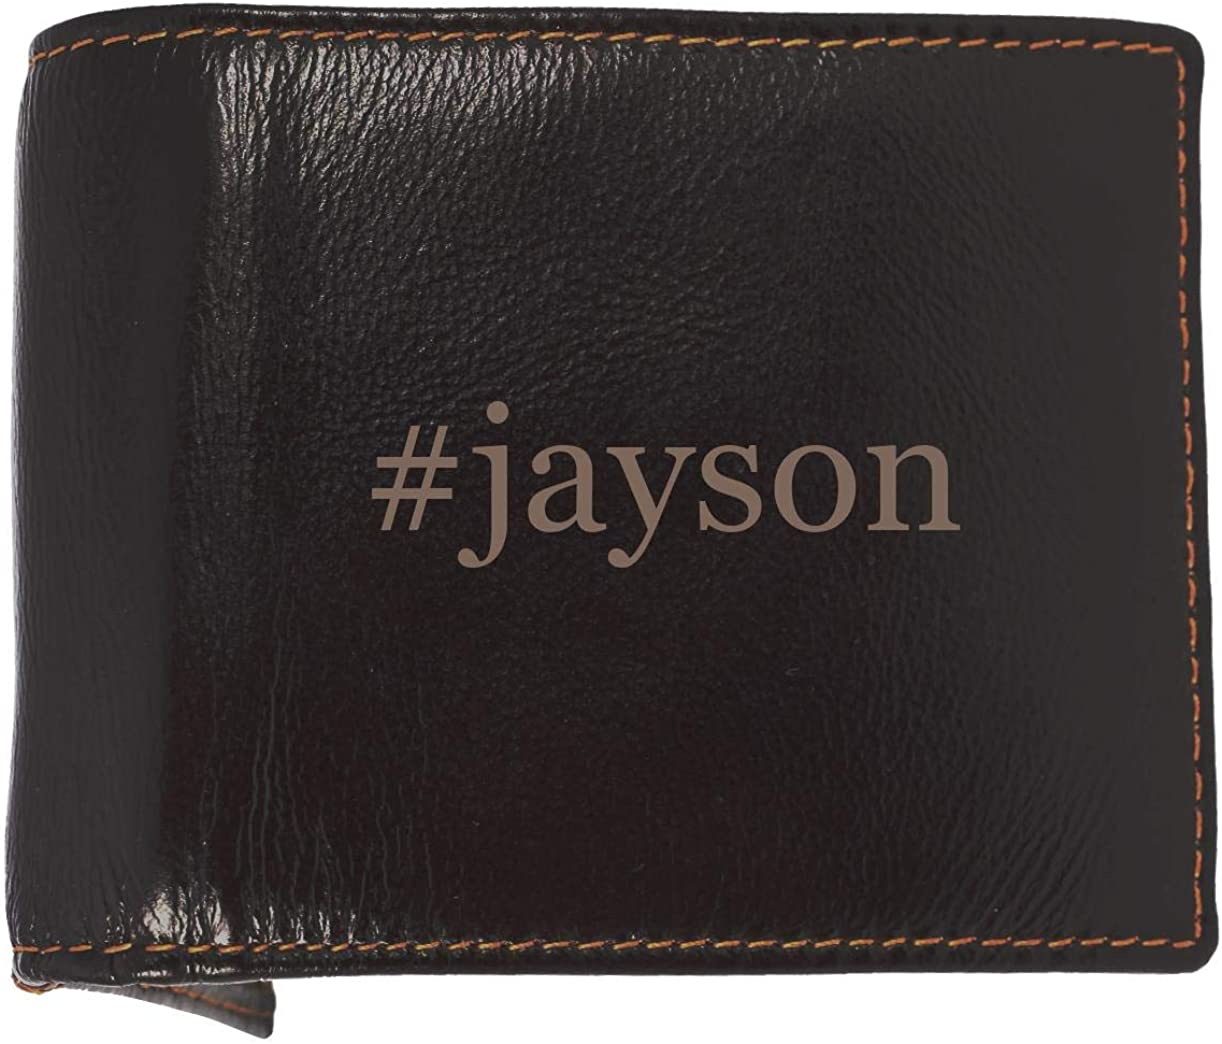 #jayson - Soft Hashtag Cowhide Genuine Engraved Bifold Leather Wallet